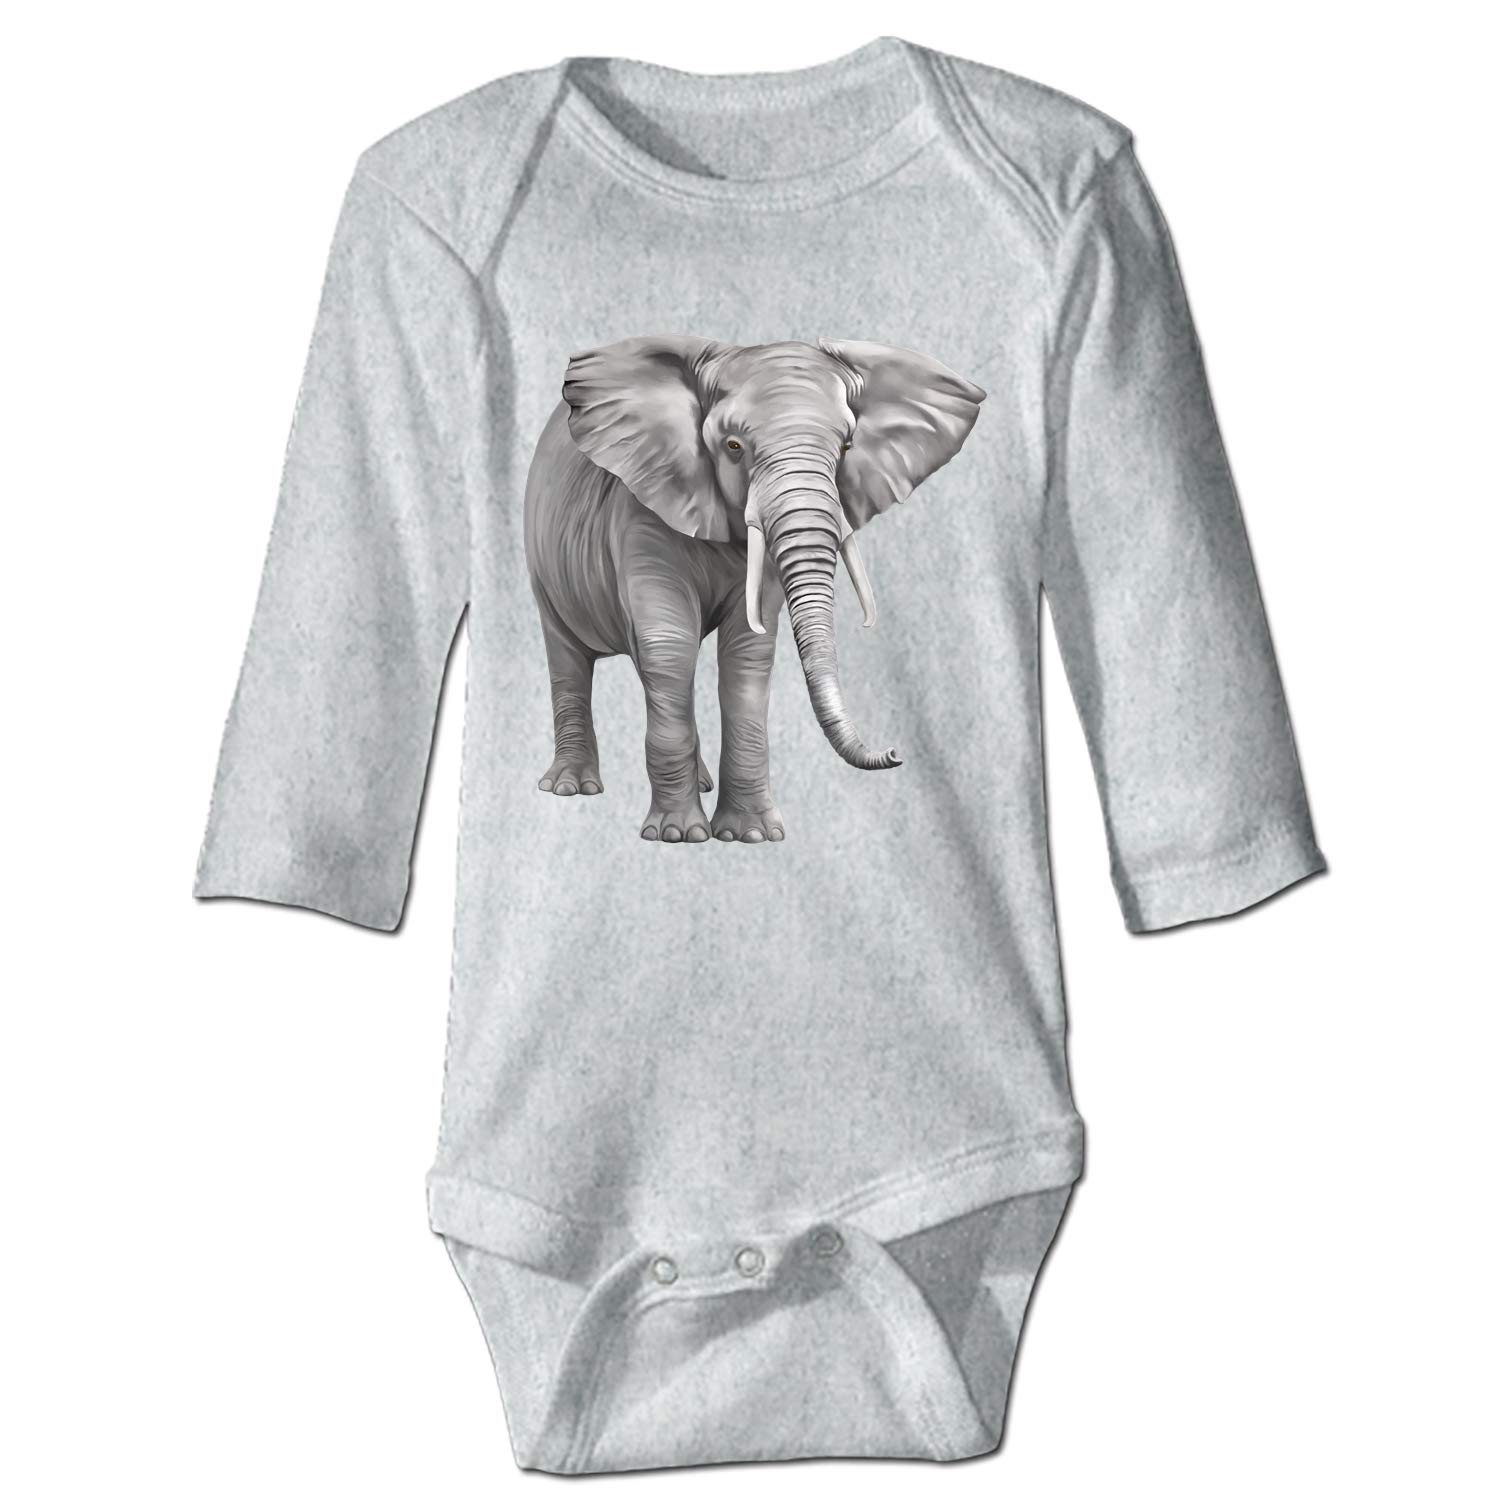 YSKHDBC Baby Girl Clothes Sheep Long Sleeve Onesies Romper Home Outfit